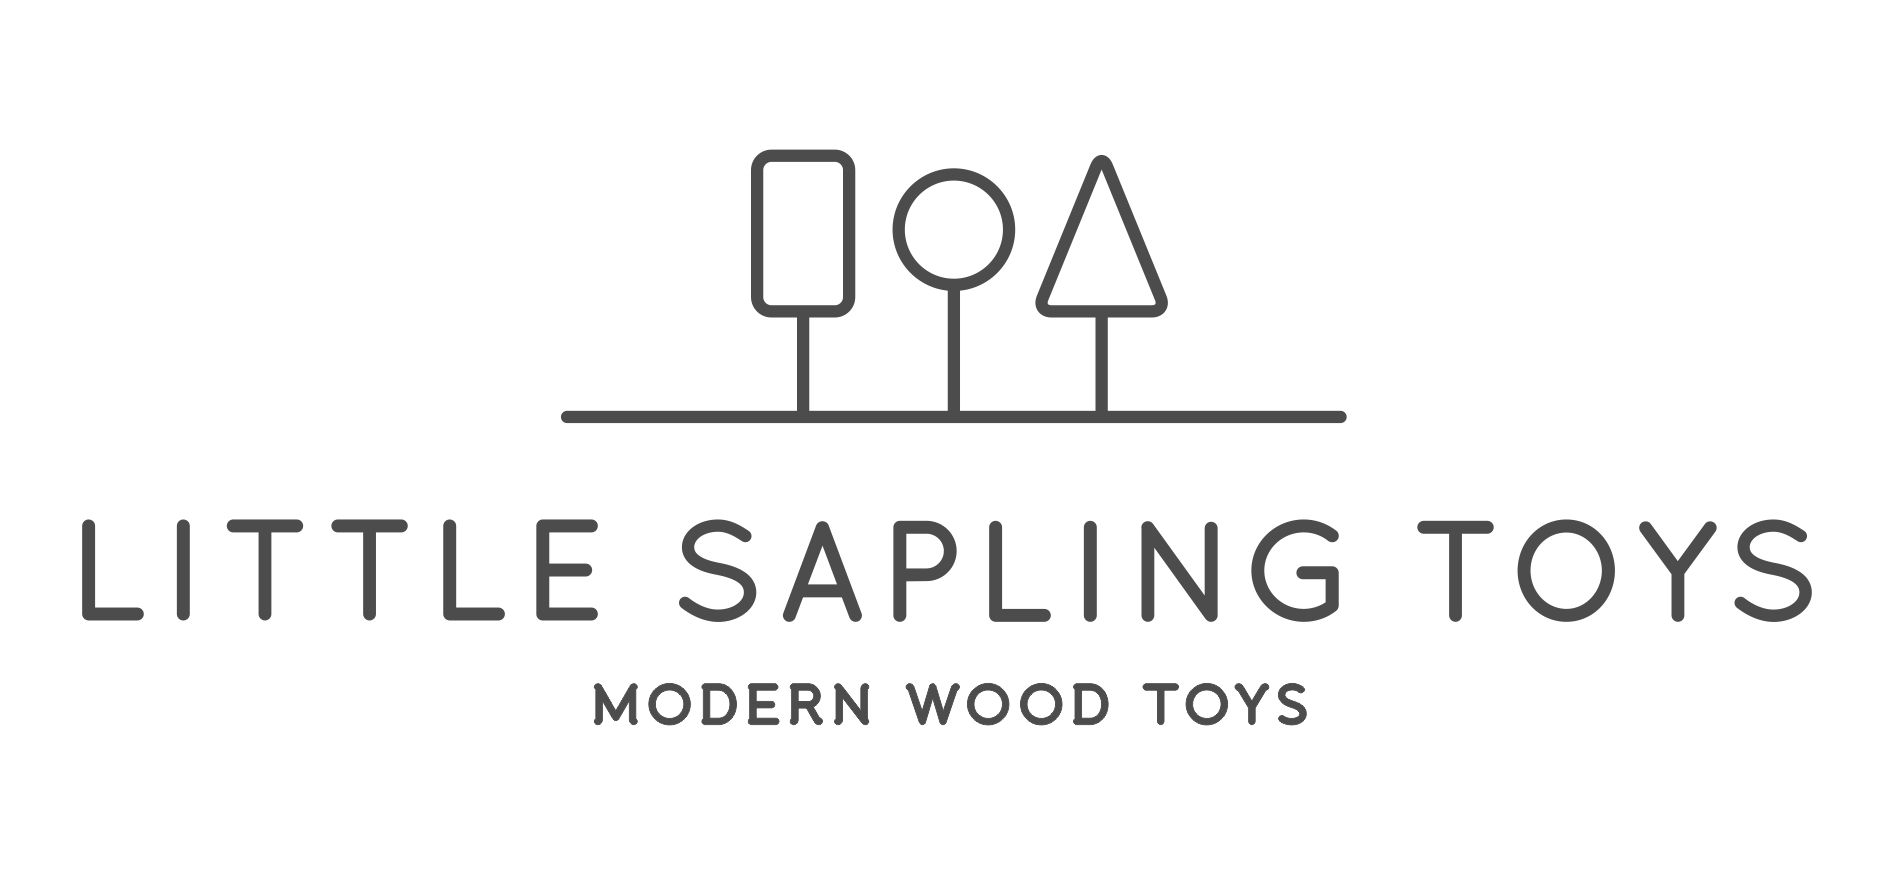 Wood Toys For Babies Amp Toddlers That Encourage